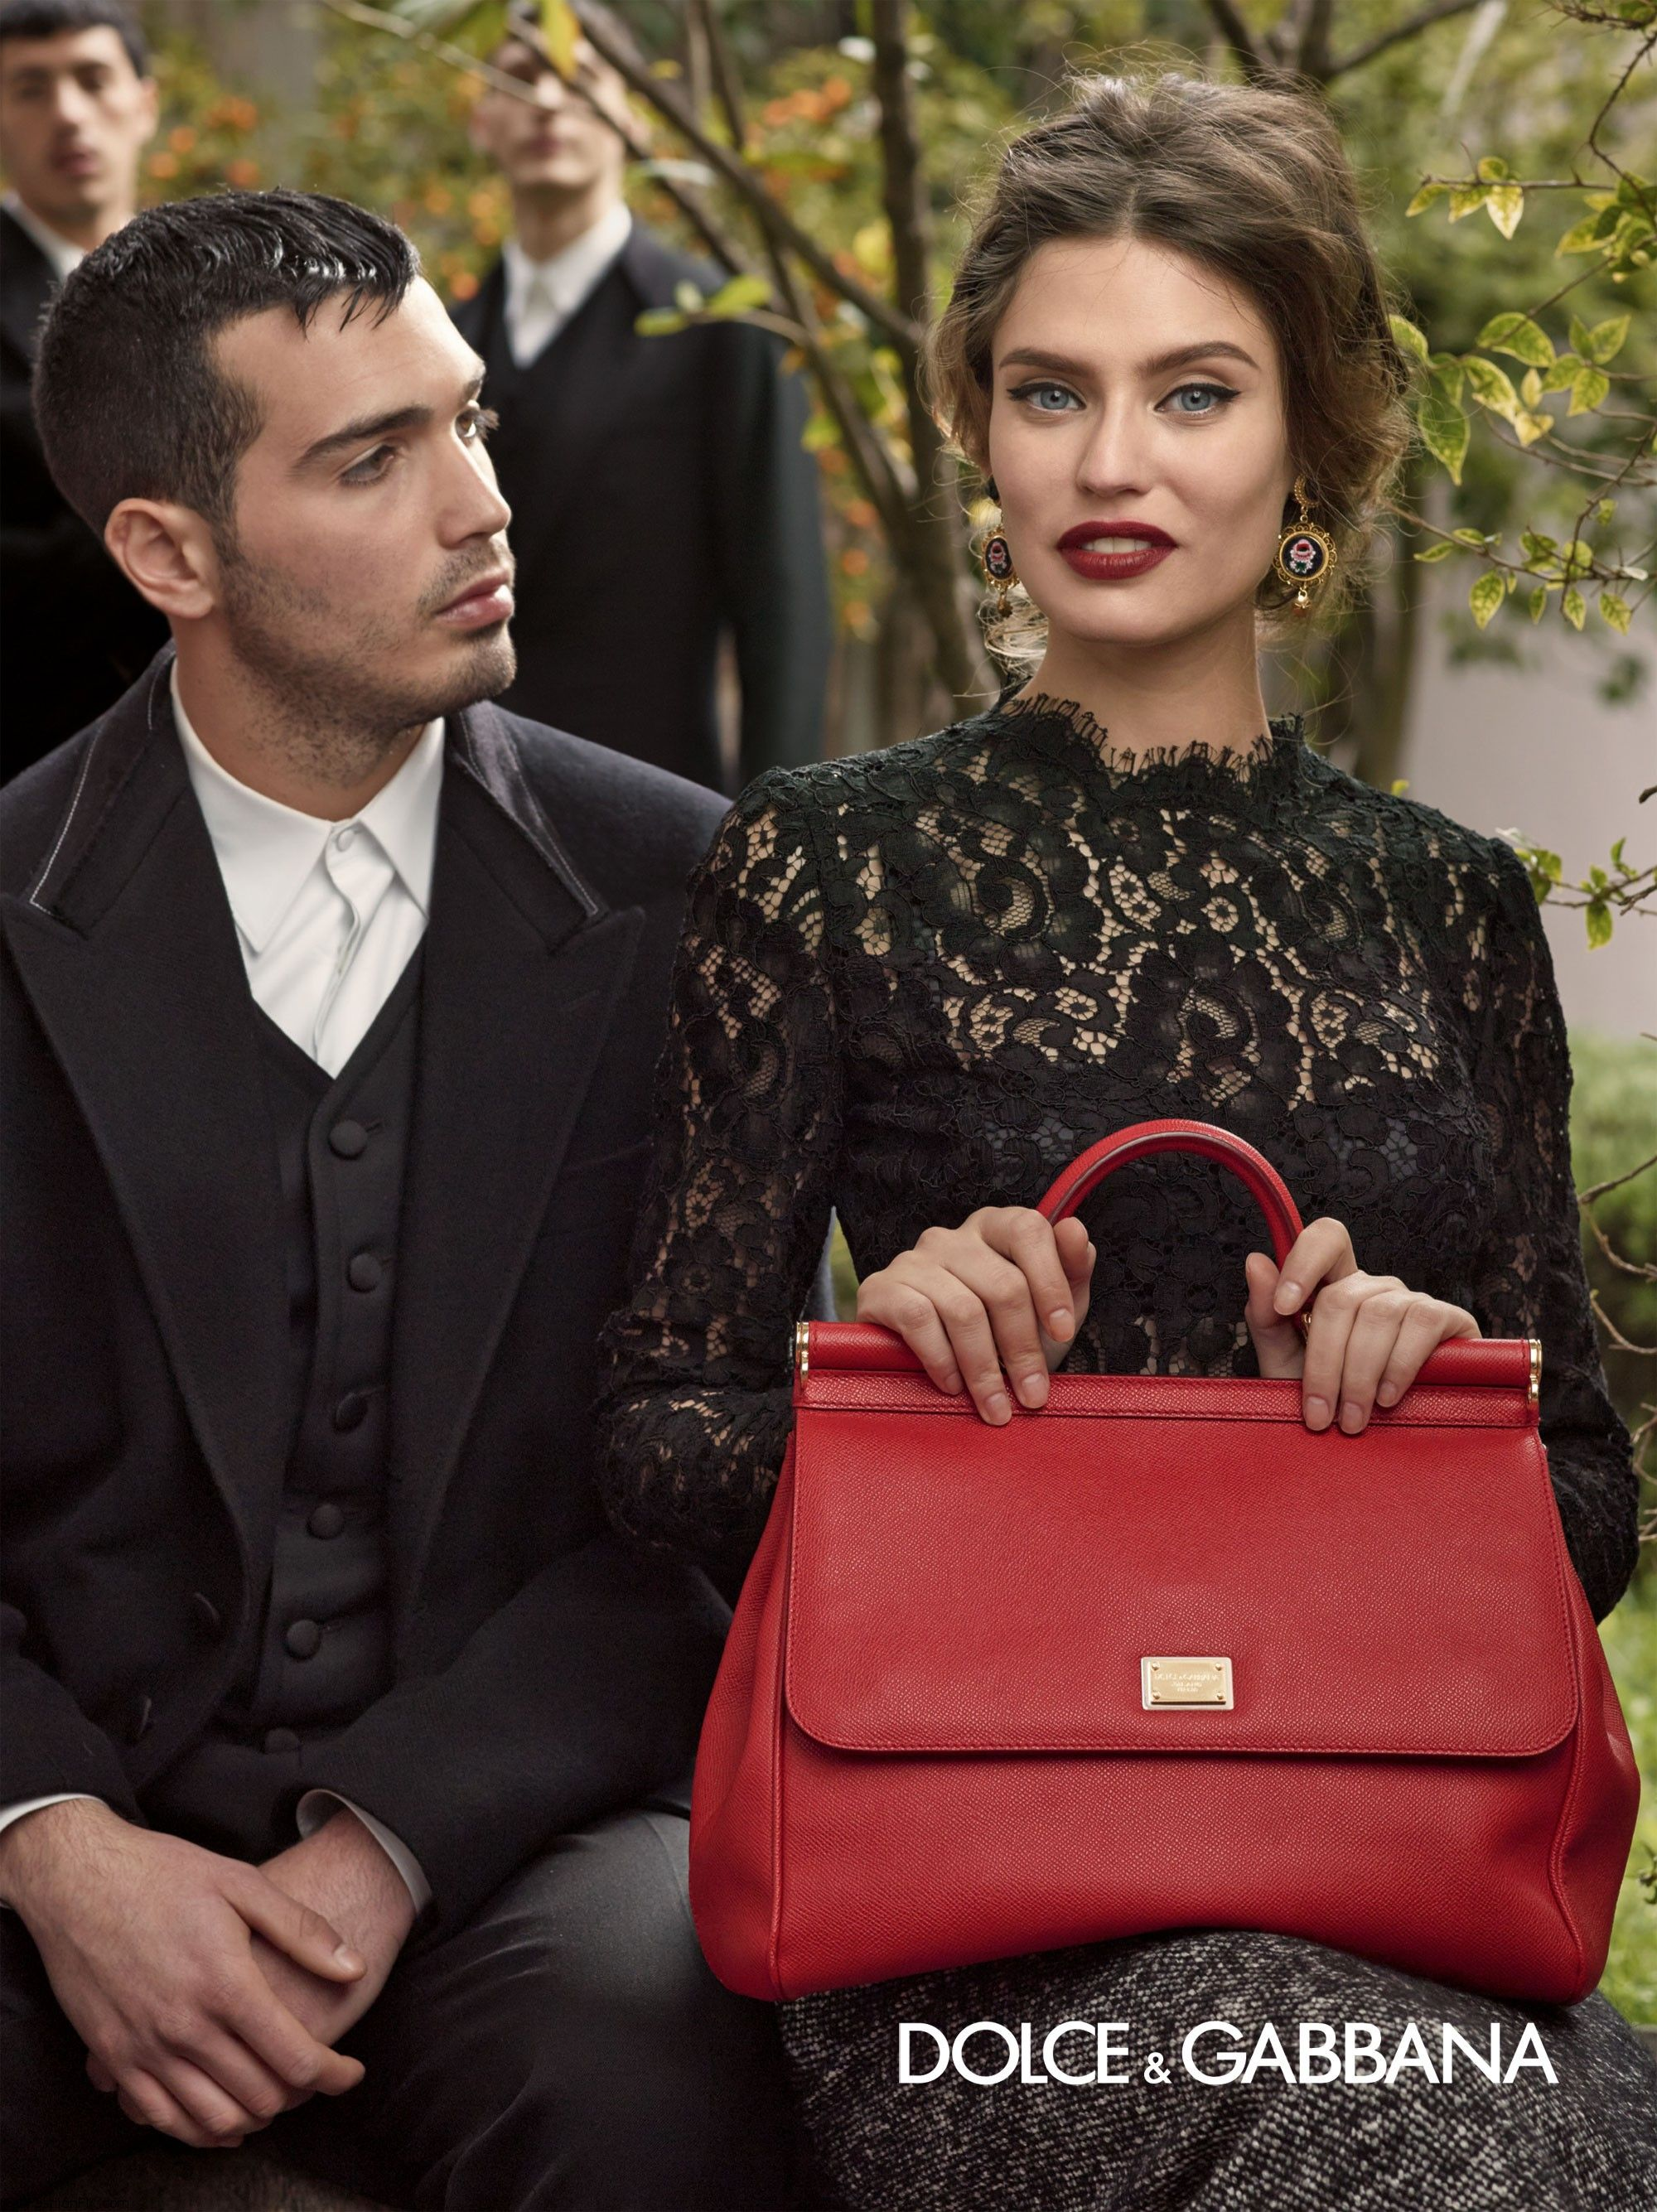 dolce-and-gabbana-fw-2014-women-adv-campaign-17